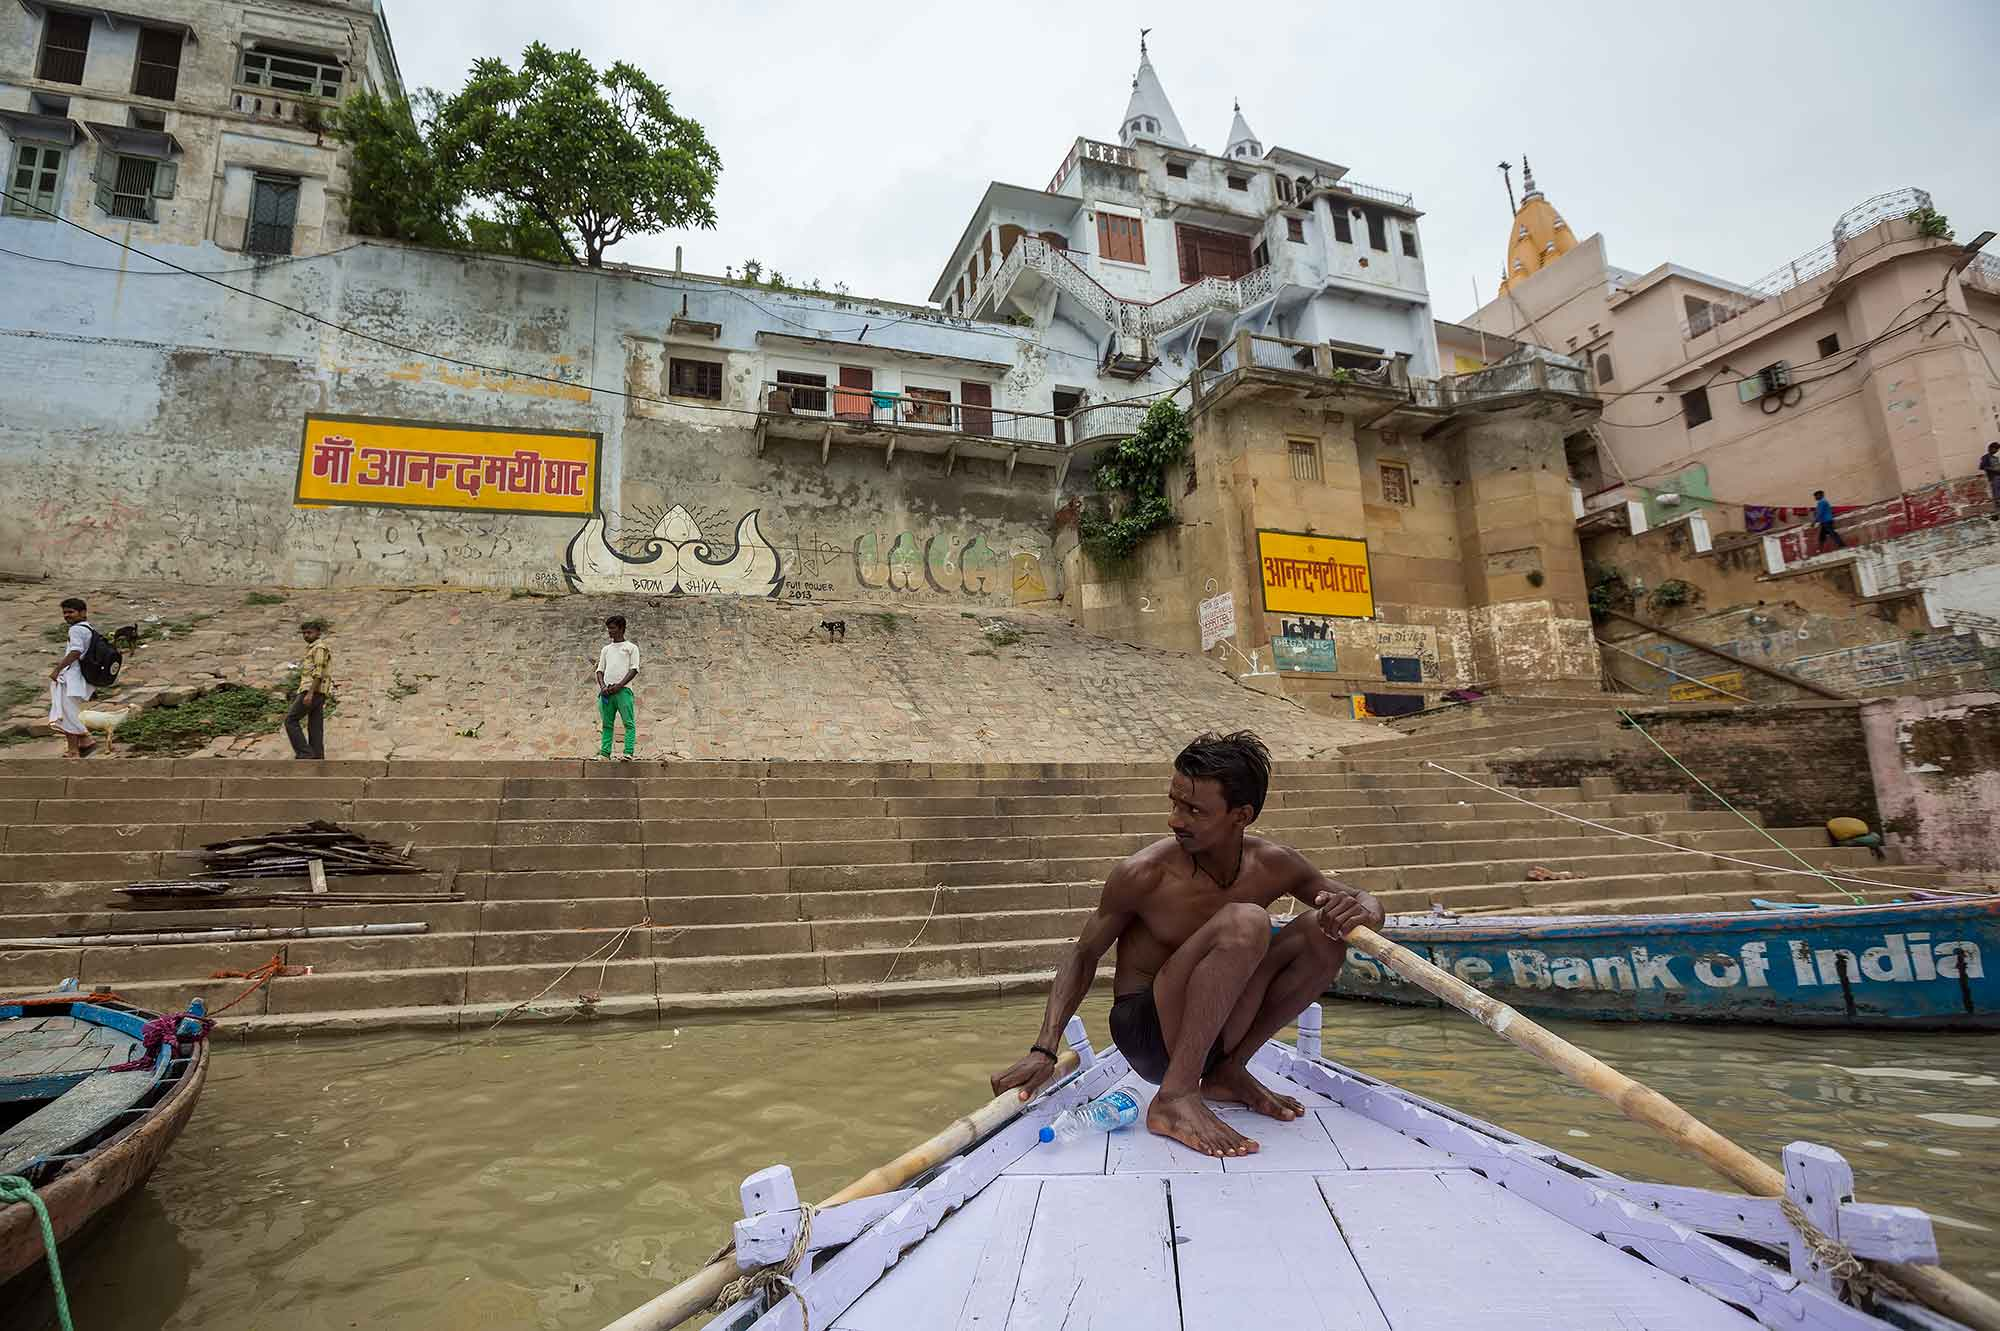 A boat ride along the Ganges river in Varanasi is an absolute must for any visitor!